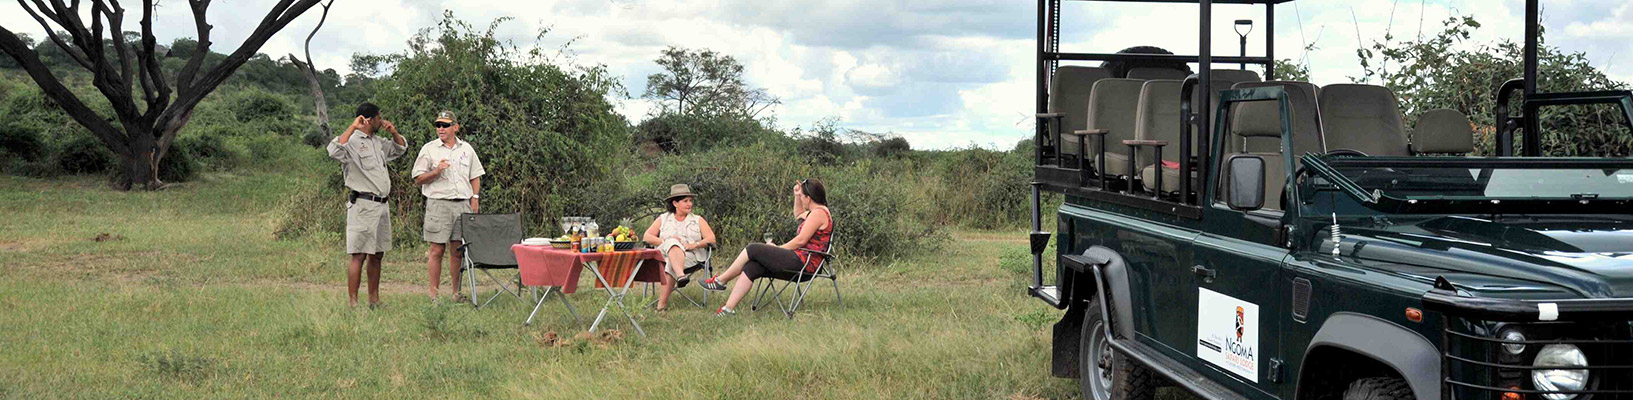 Drinks-on-an-Ngoma-game-drive-.jpg